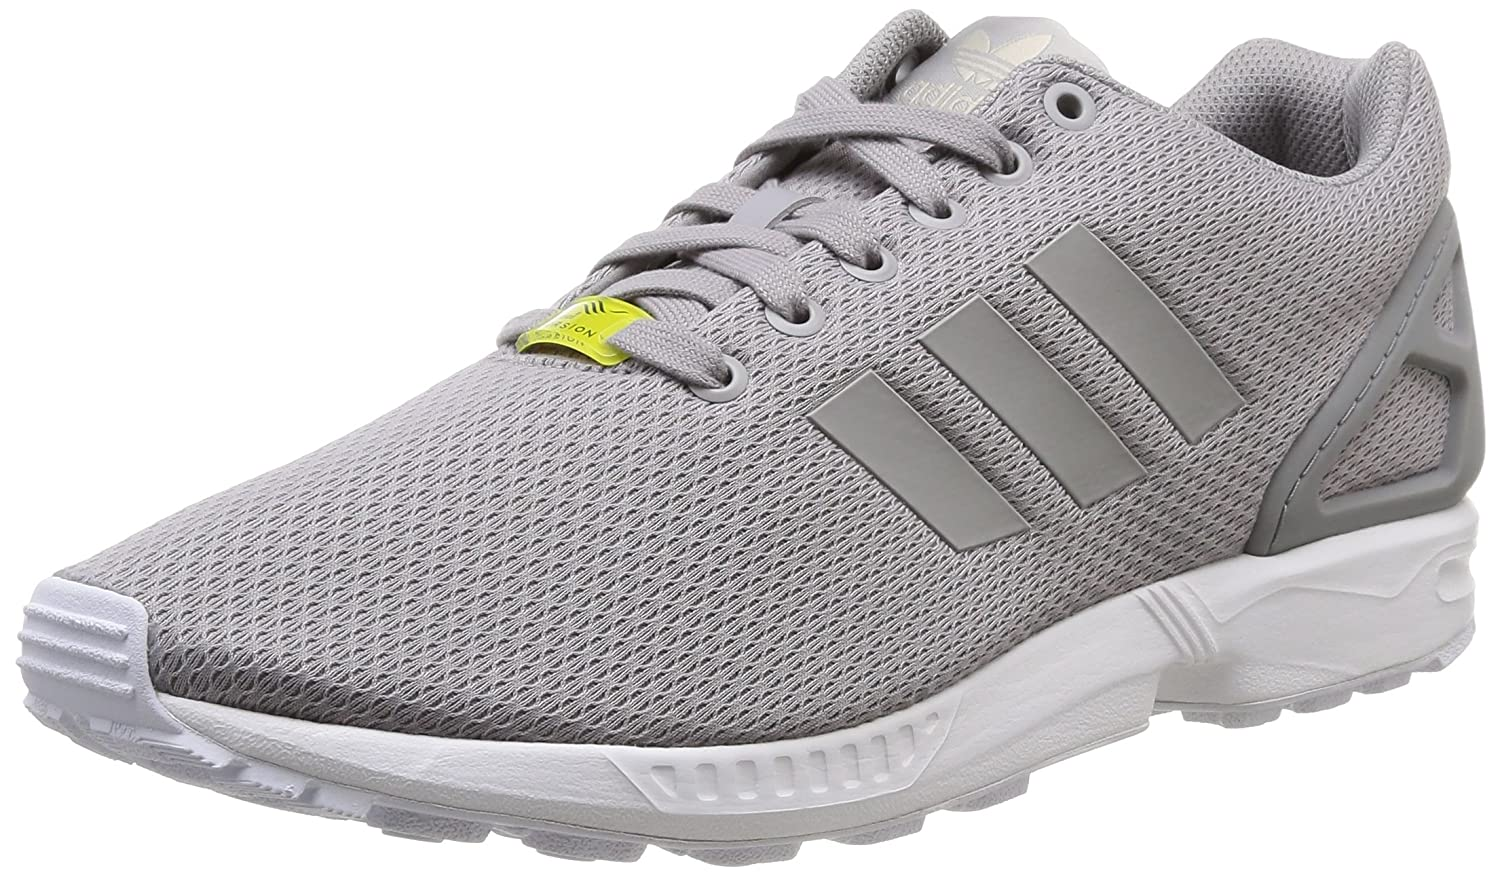 Adidas ZX Flux, Zapatillas Unisex Adulto 48 EU|Multicolor (Plata / Blanco)